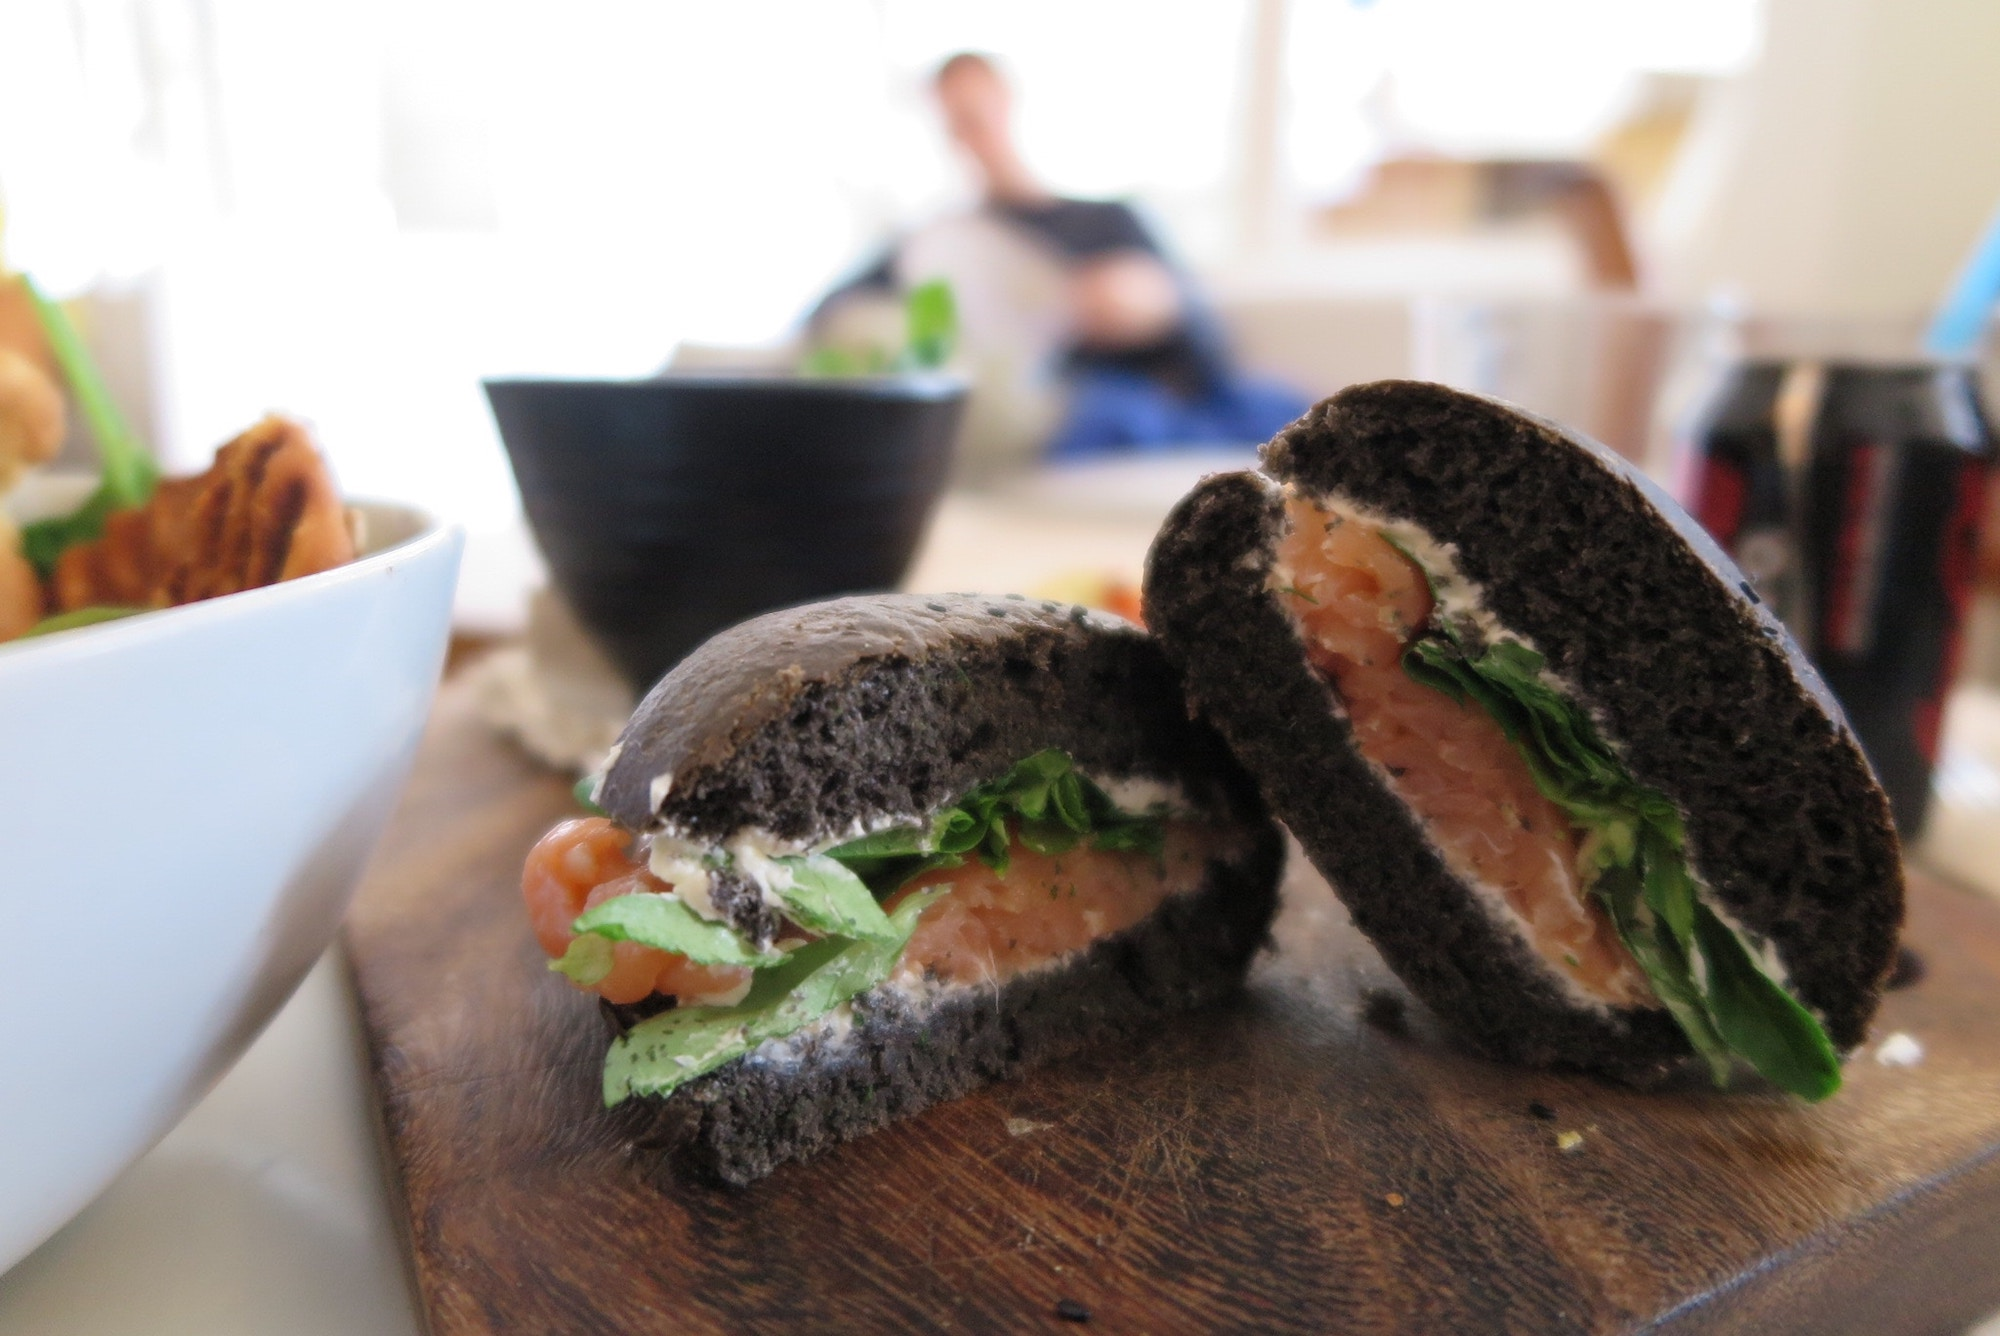 Black bread in Paris is a huge trend, and it's used for making sandwiches.